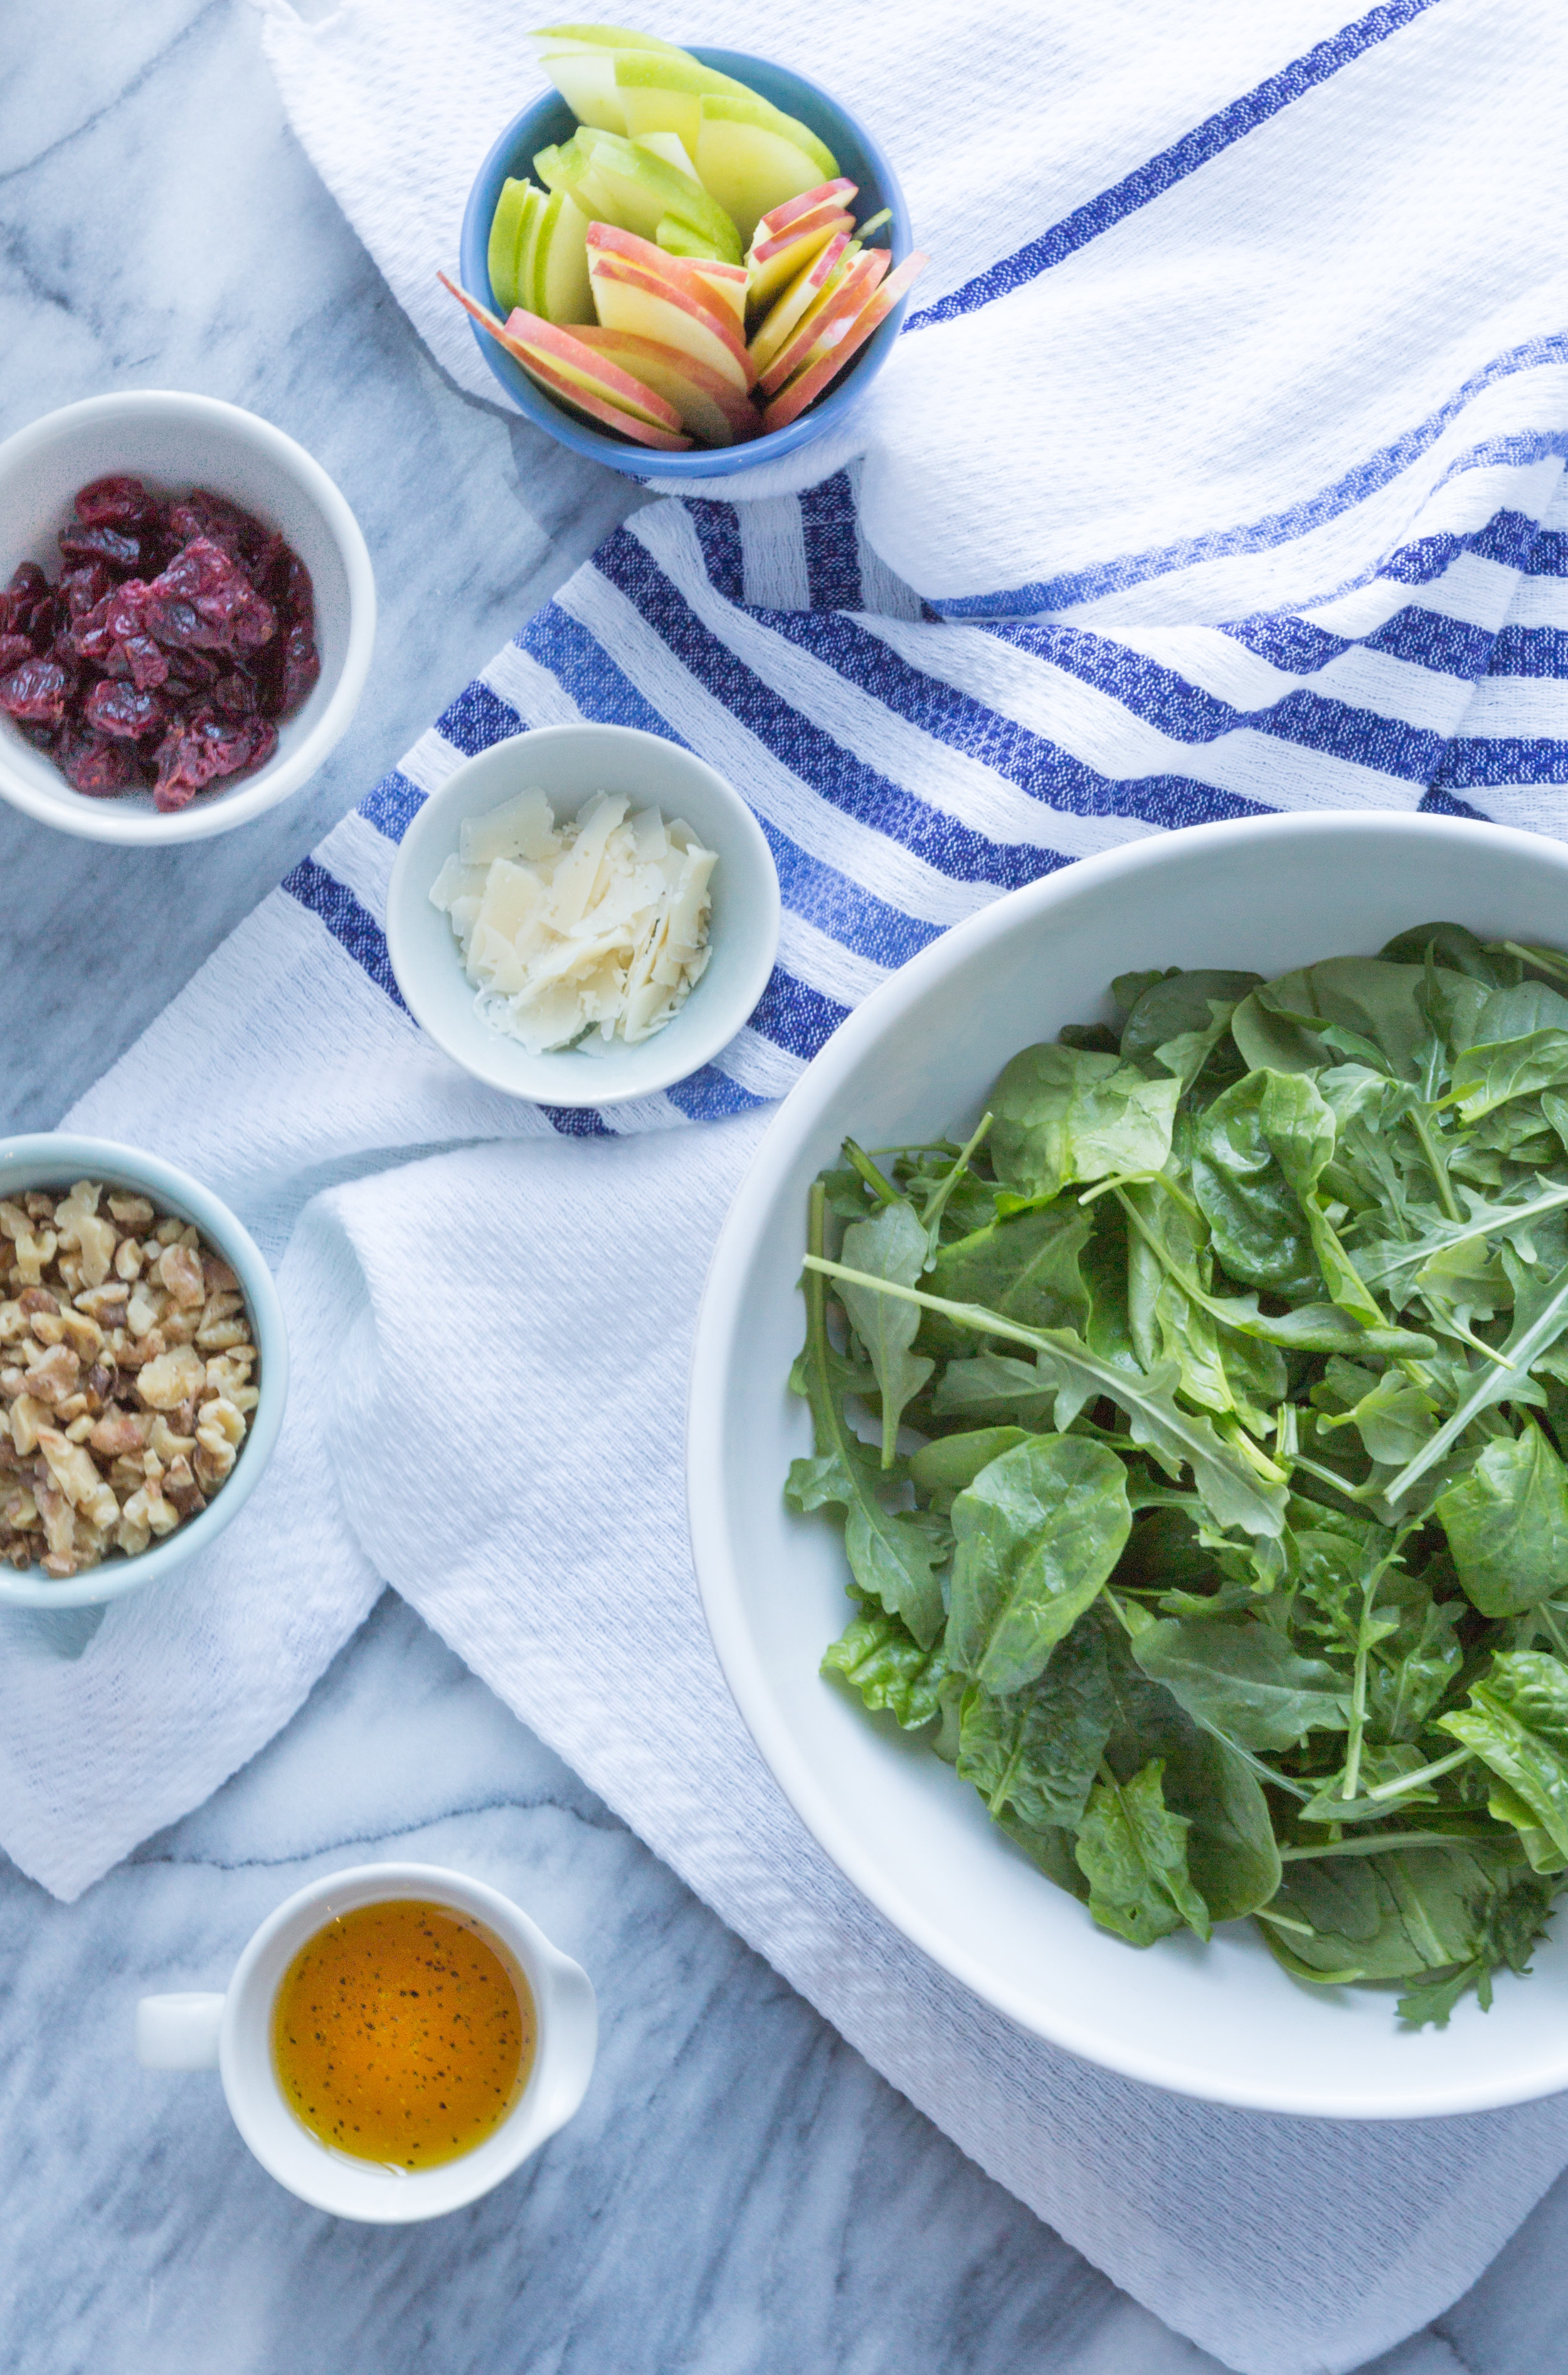 Winter Salad with Cranberries, Walnuts and Apples | Soymilk + Honey